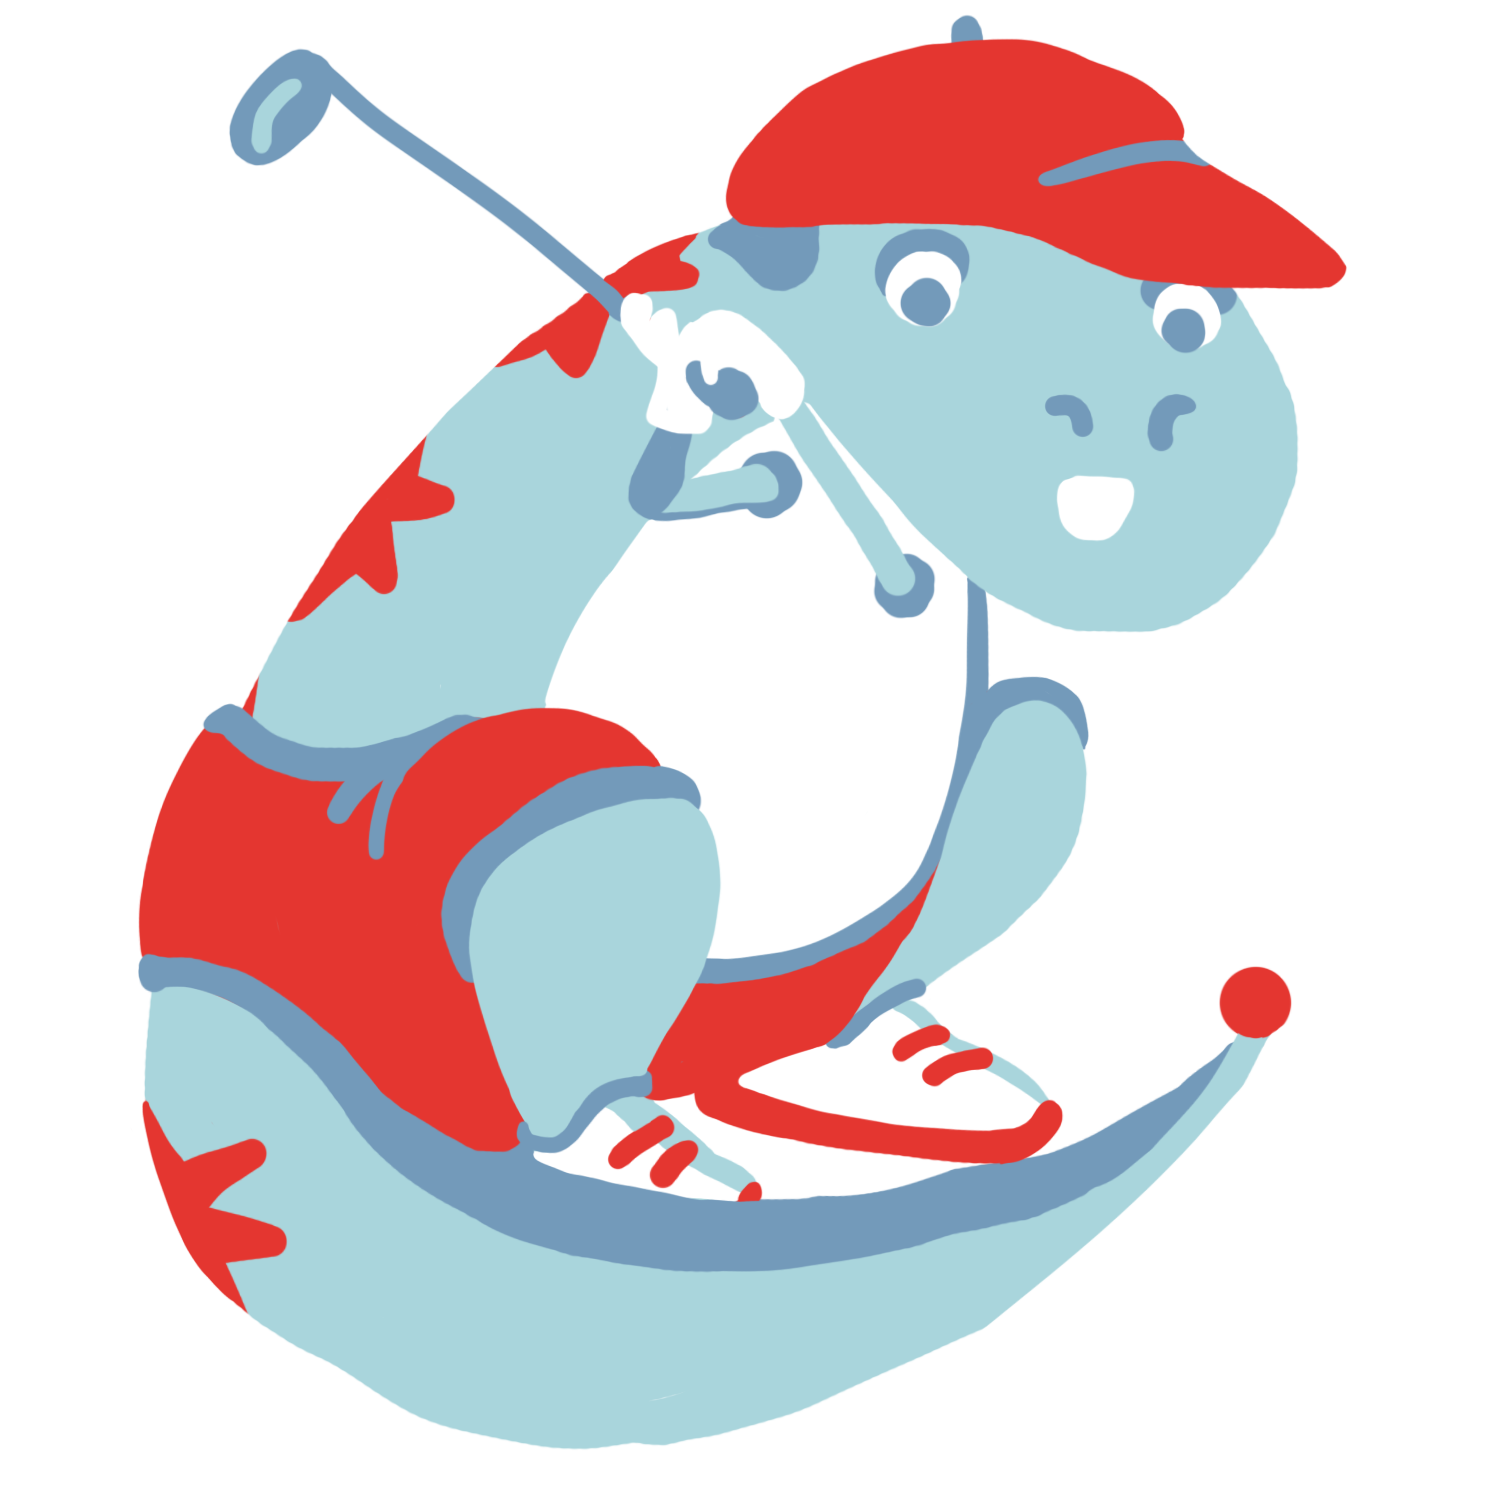 Fun Fore Golfers - Find the best golf courses, mini golf, and other golfing games near you.